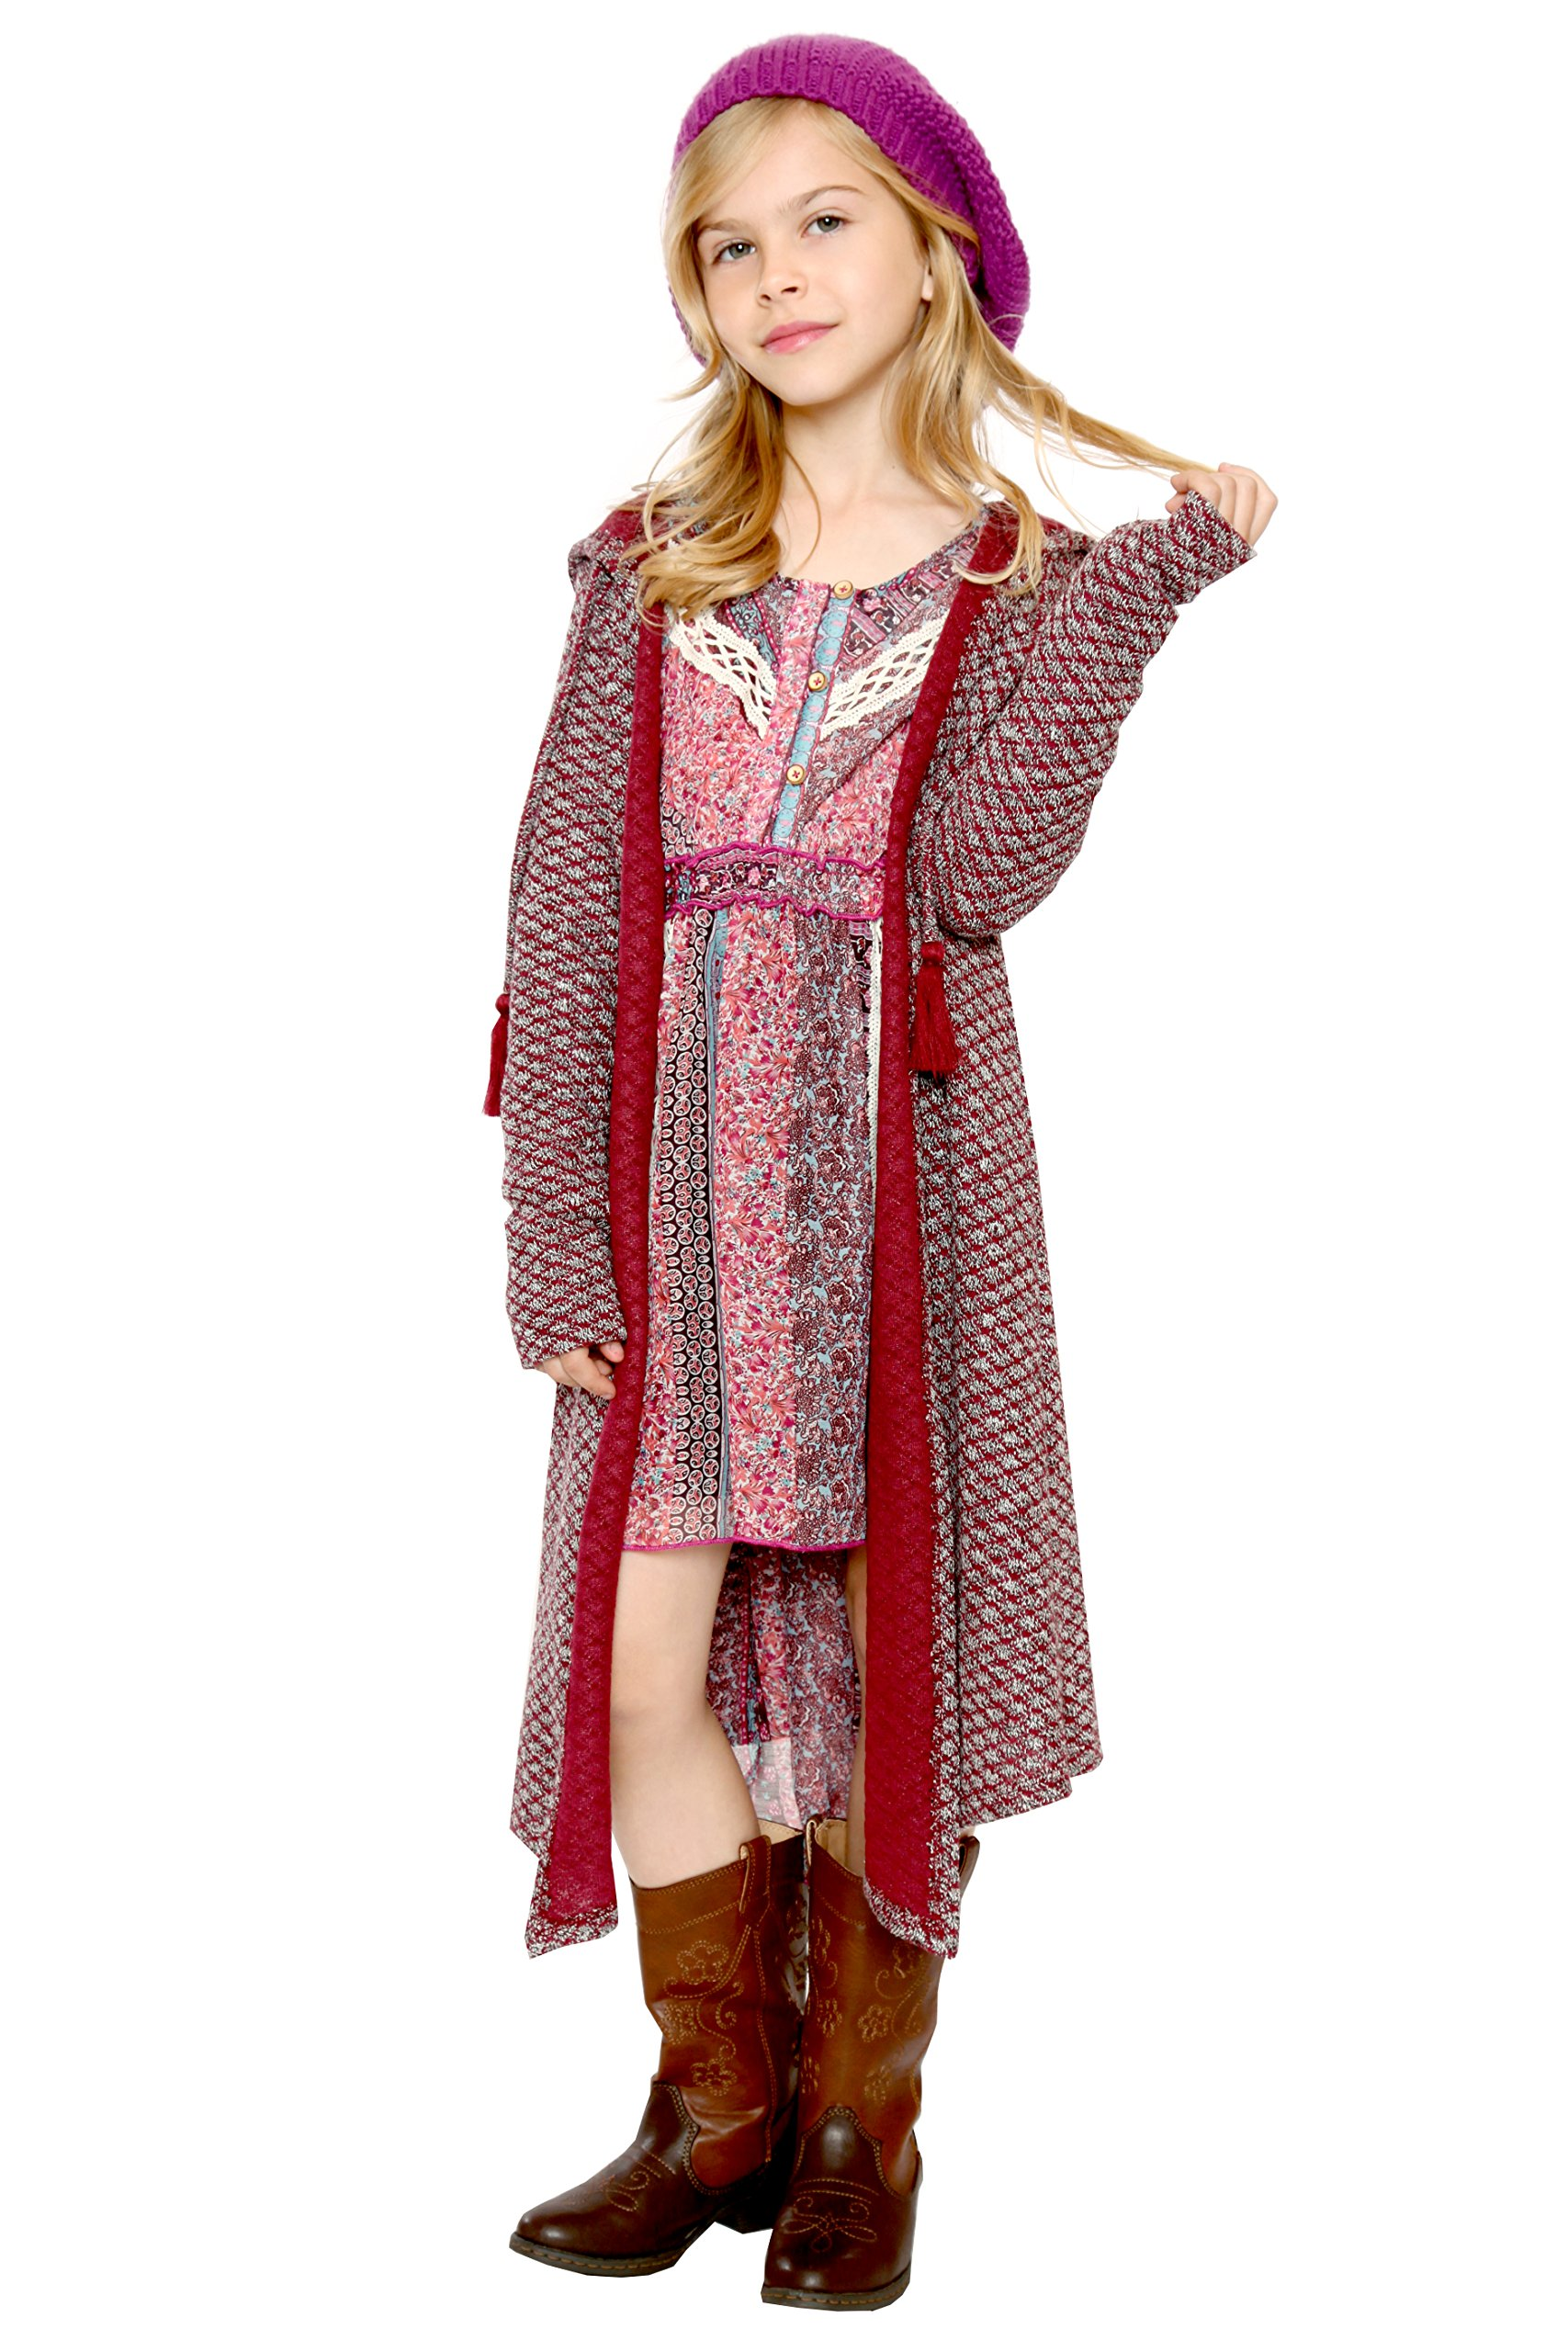 Truly Me, Big Girls Knit Long Sweater, 7-16 (14, Burgundy) by Truly Me